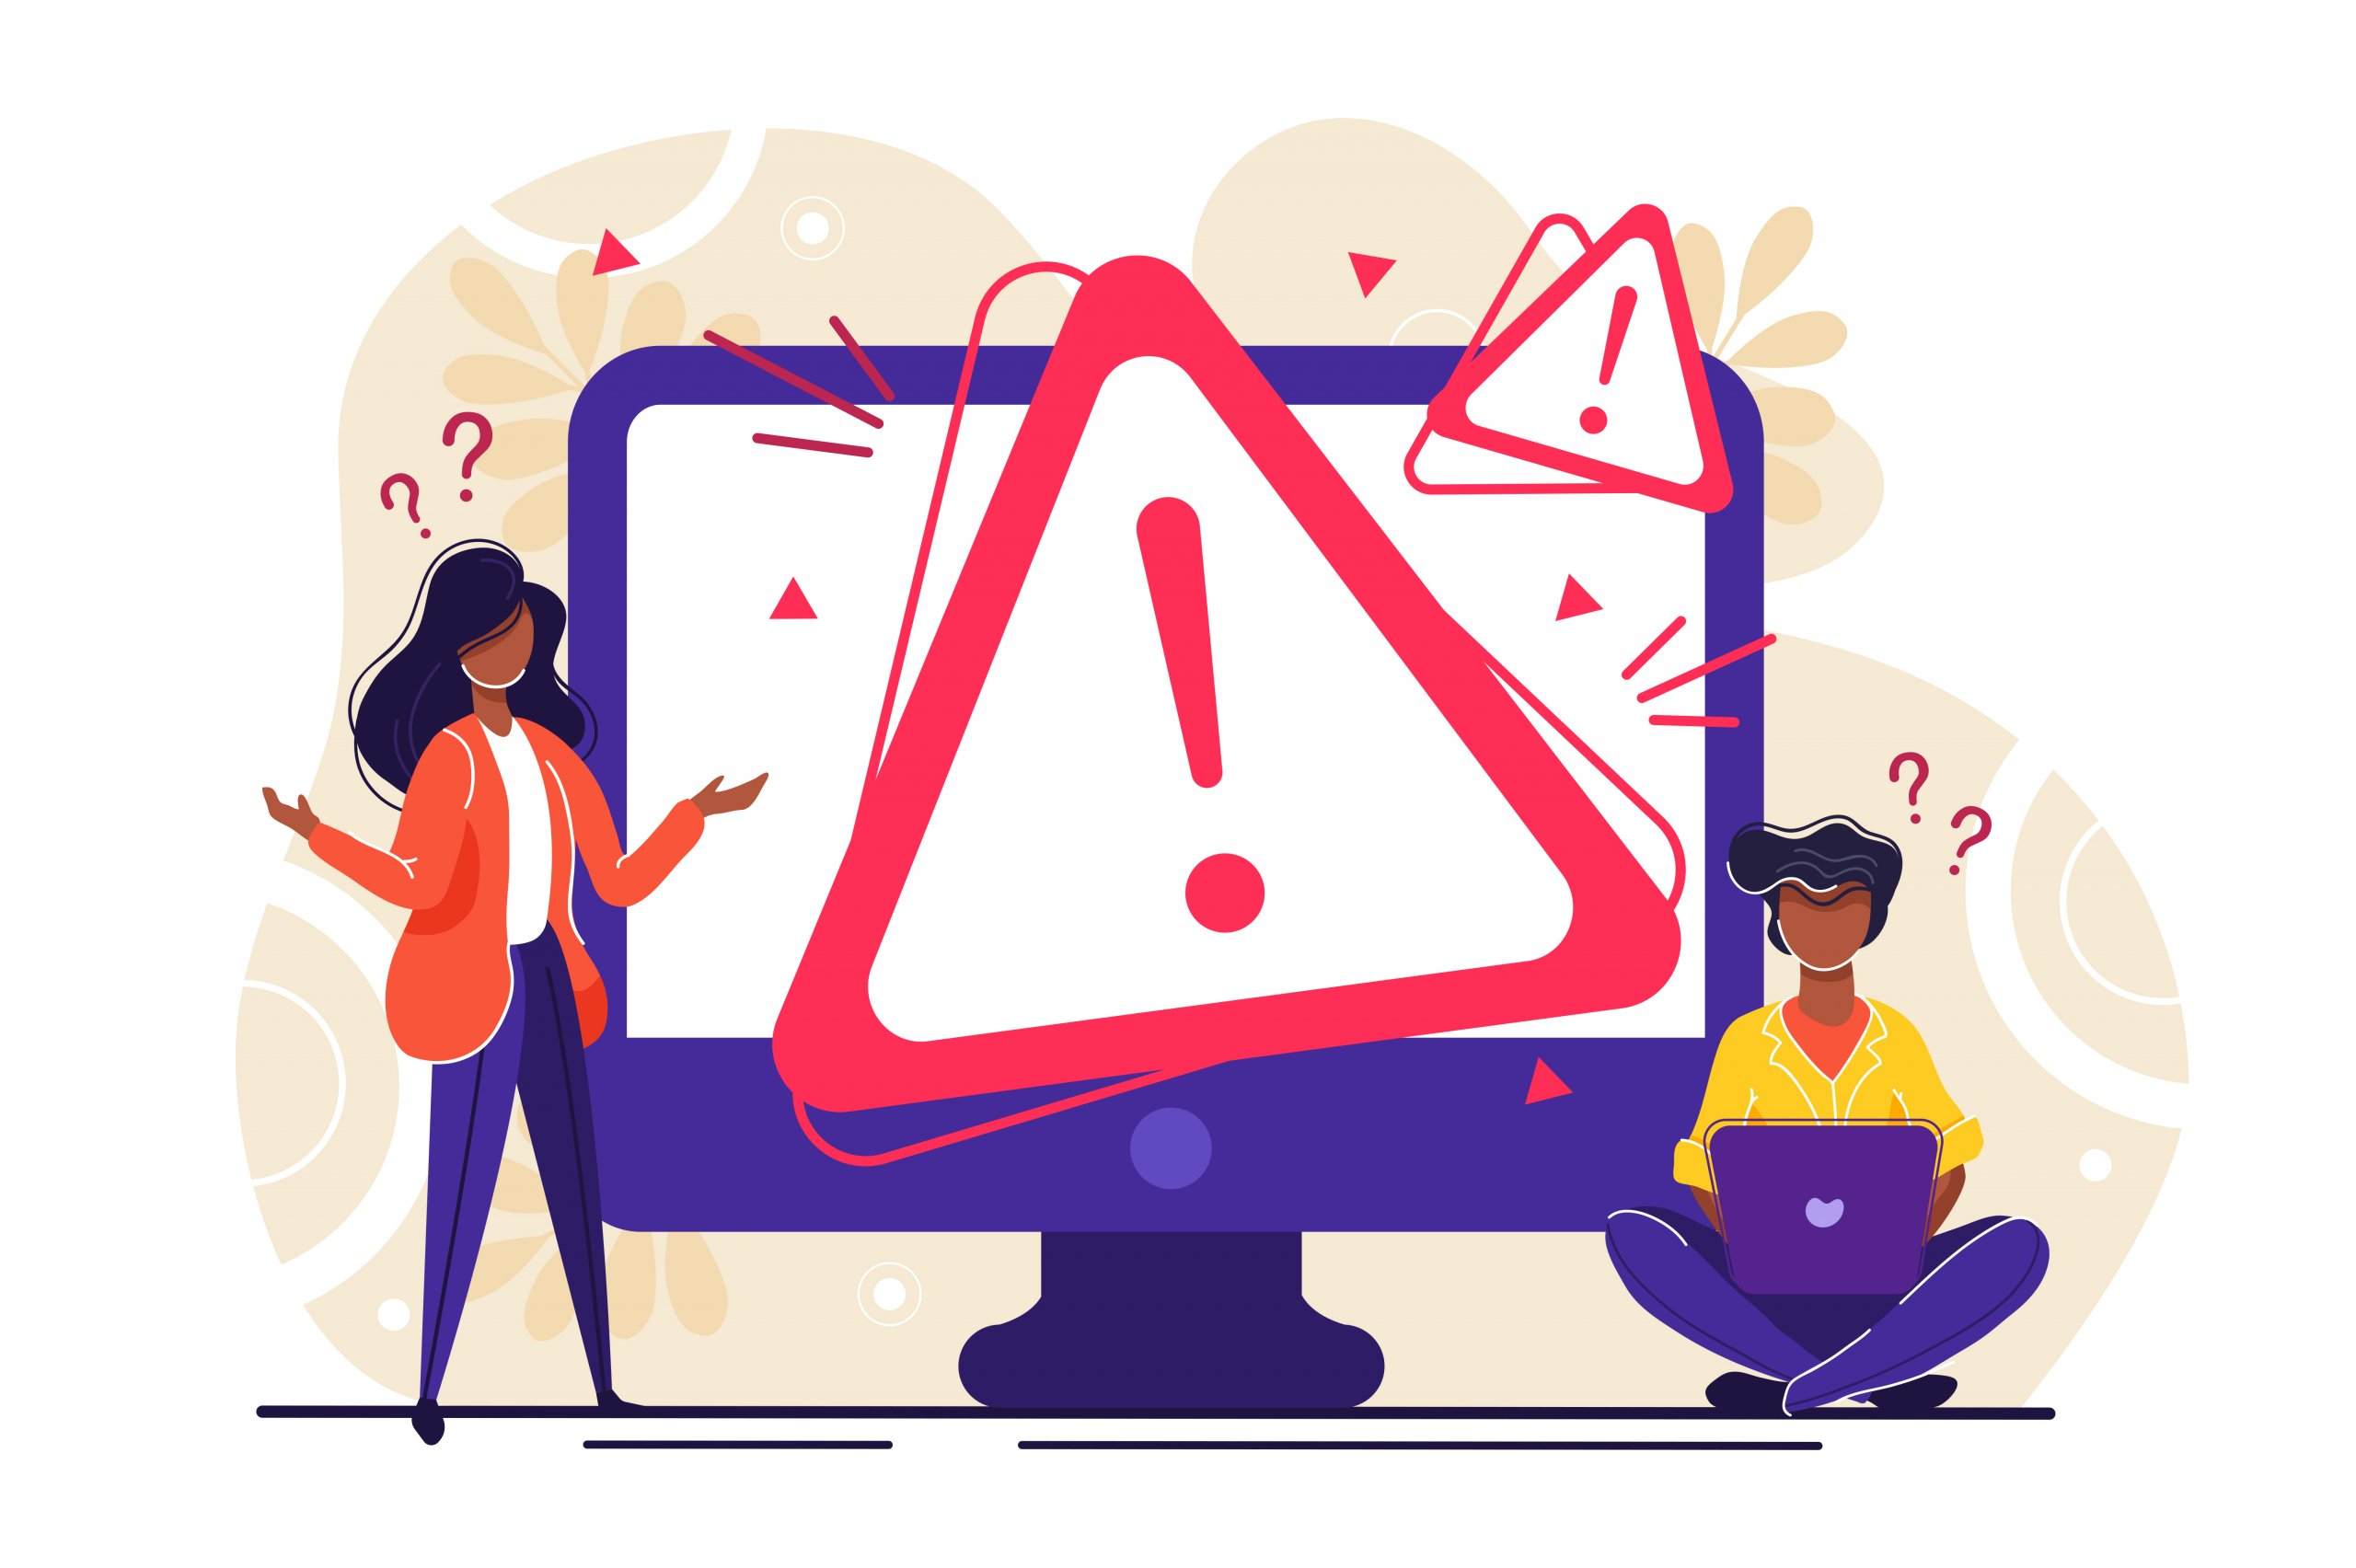 Two people stand next to a computer monitor with a red caution triangle displayed in the middle. This graphic is meant to represent a website error.